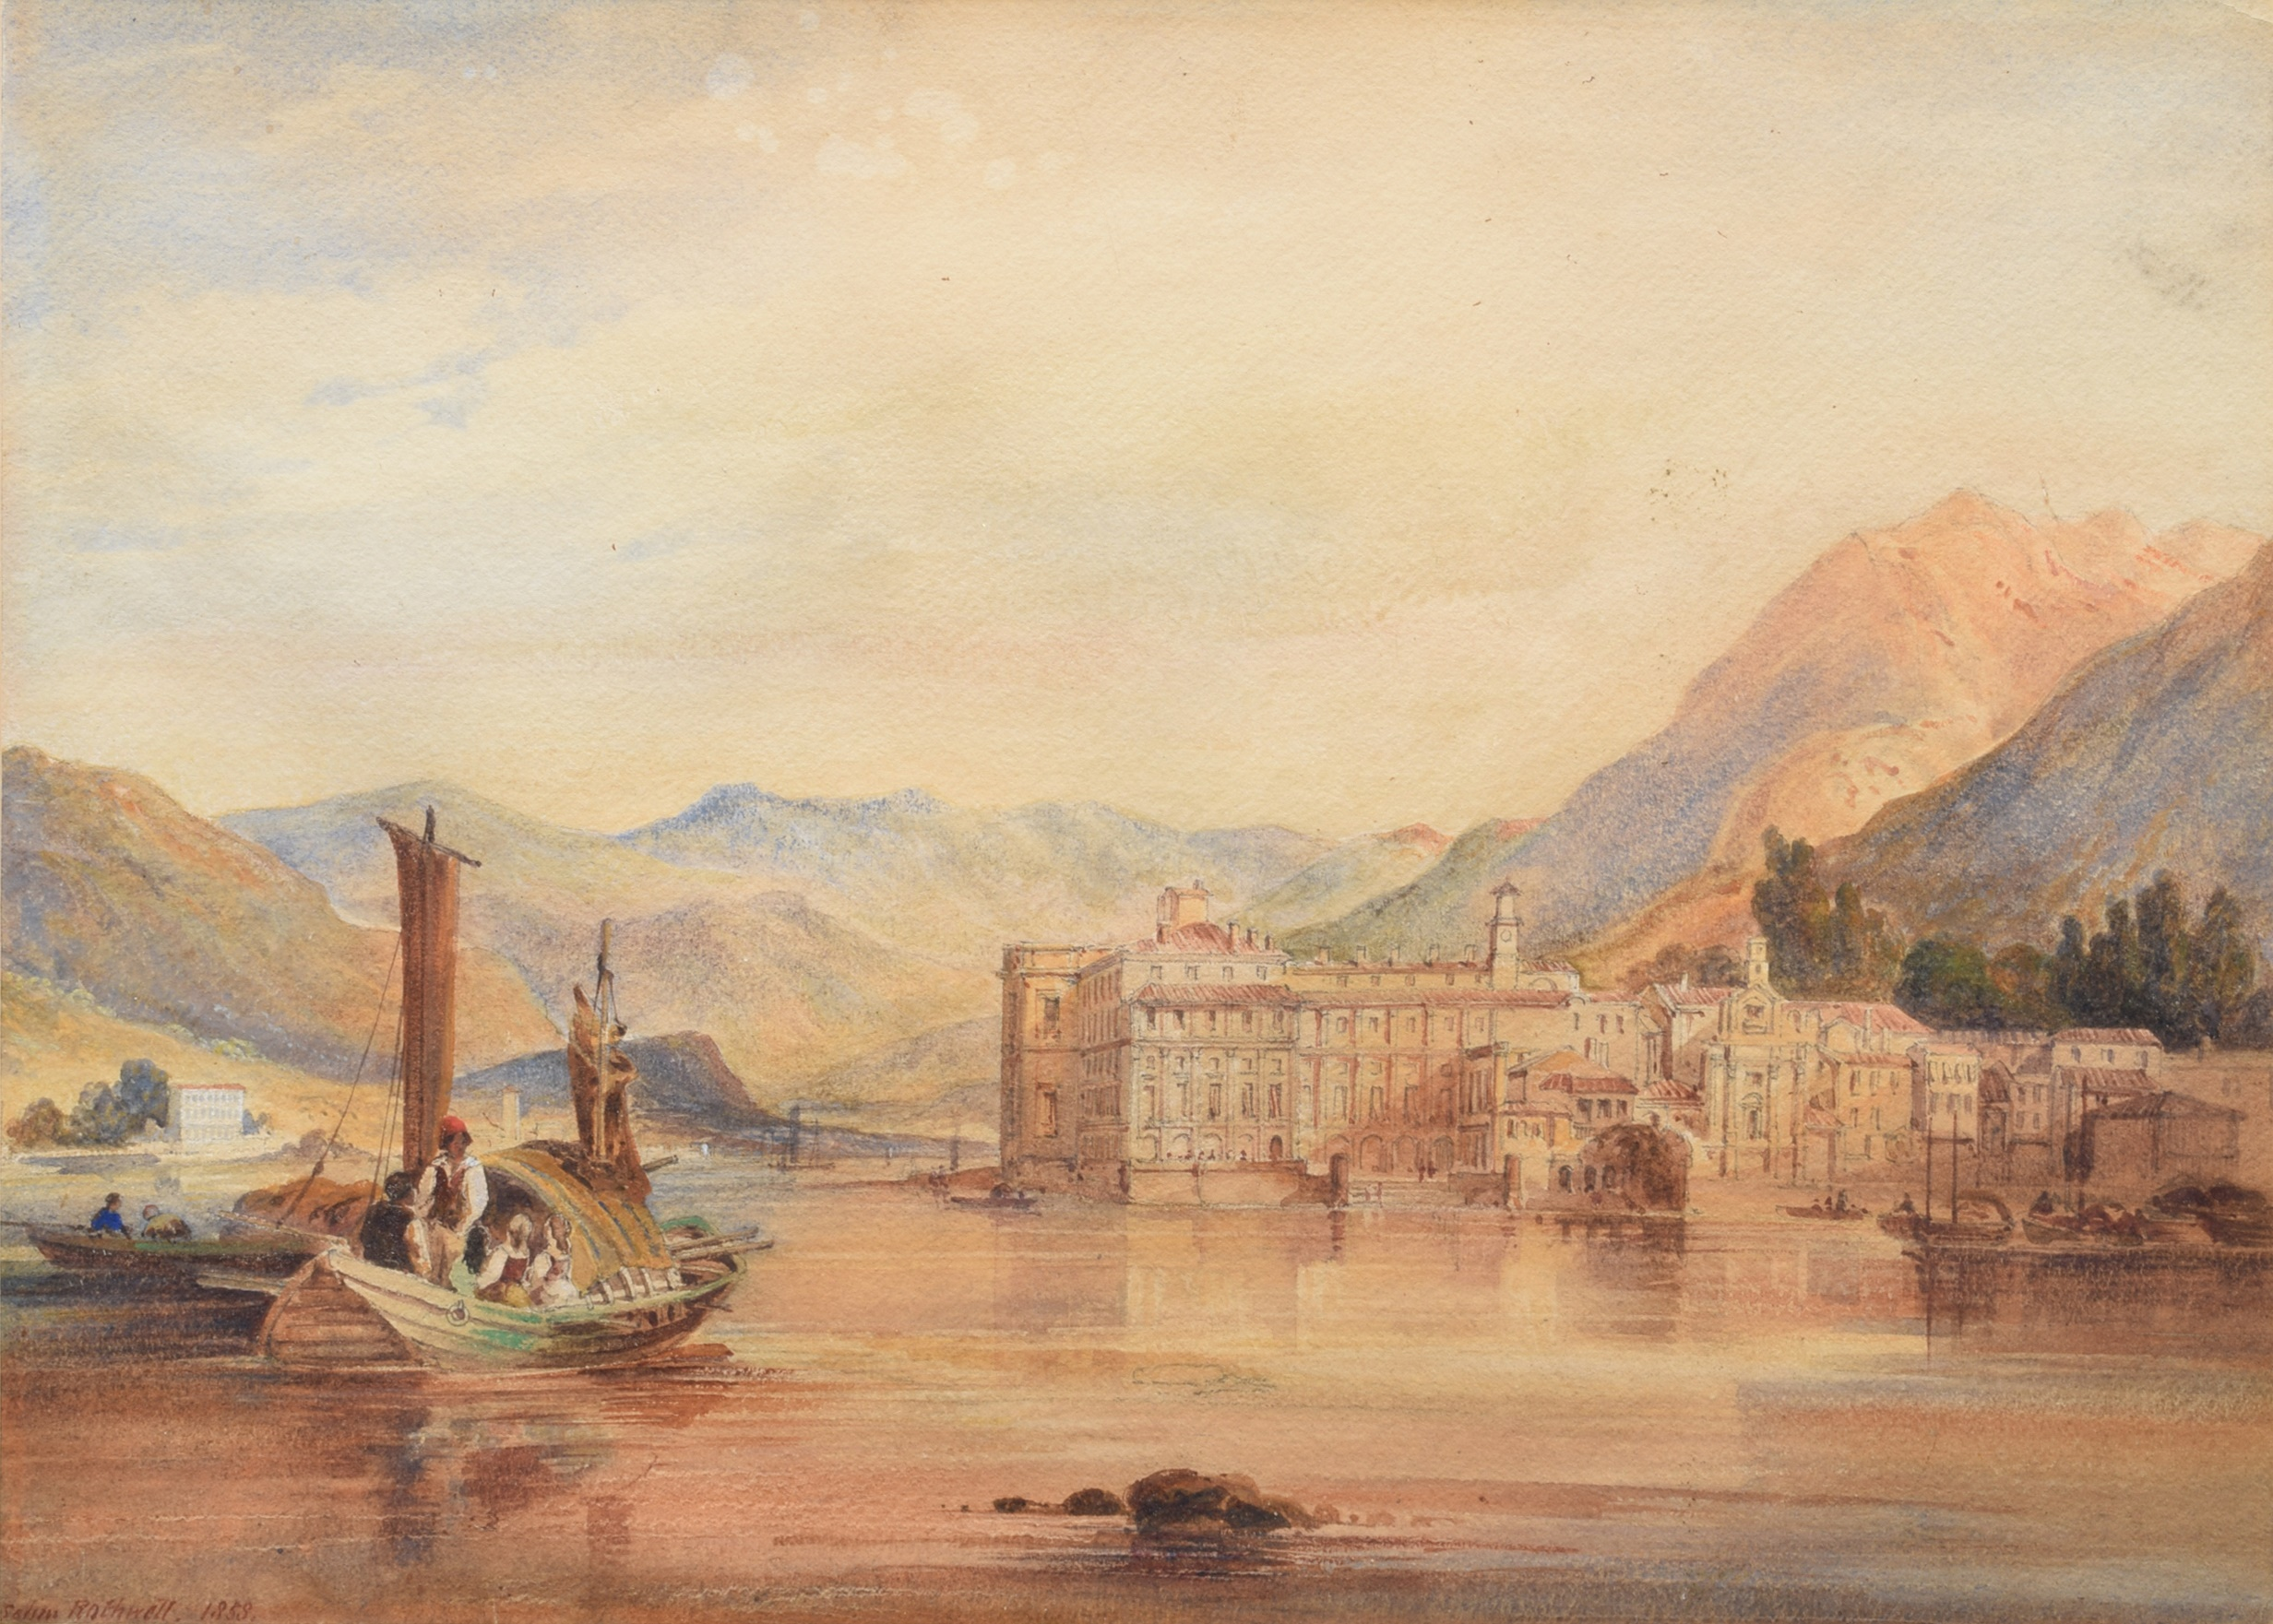 Lot 20 - Selim Rothwell (1815-1881), Lake Maggiore, signed and dated 1858, watercolour, 31.5 x 44cm, 12.5 x